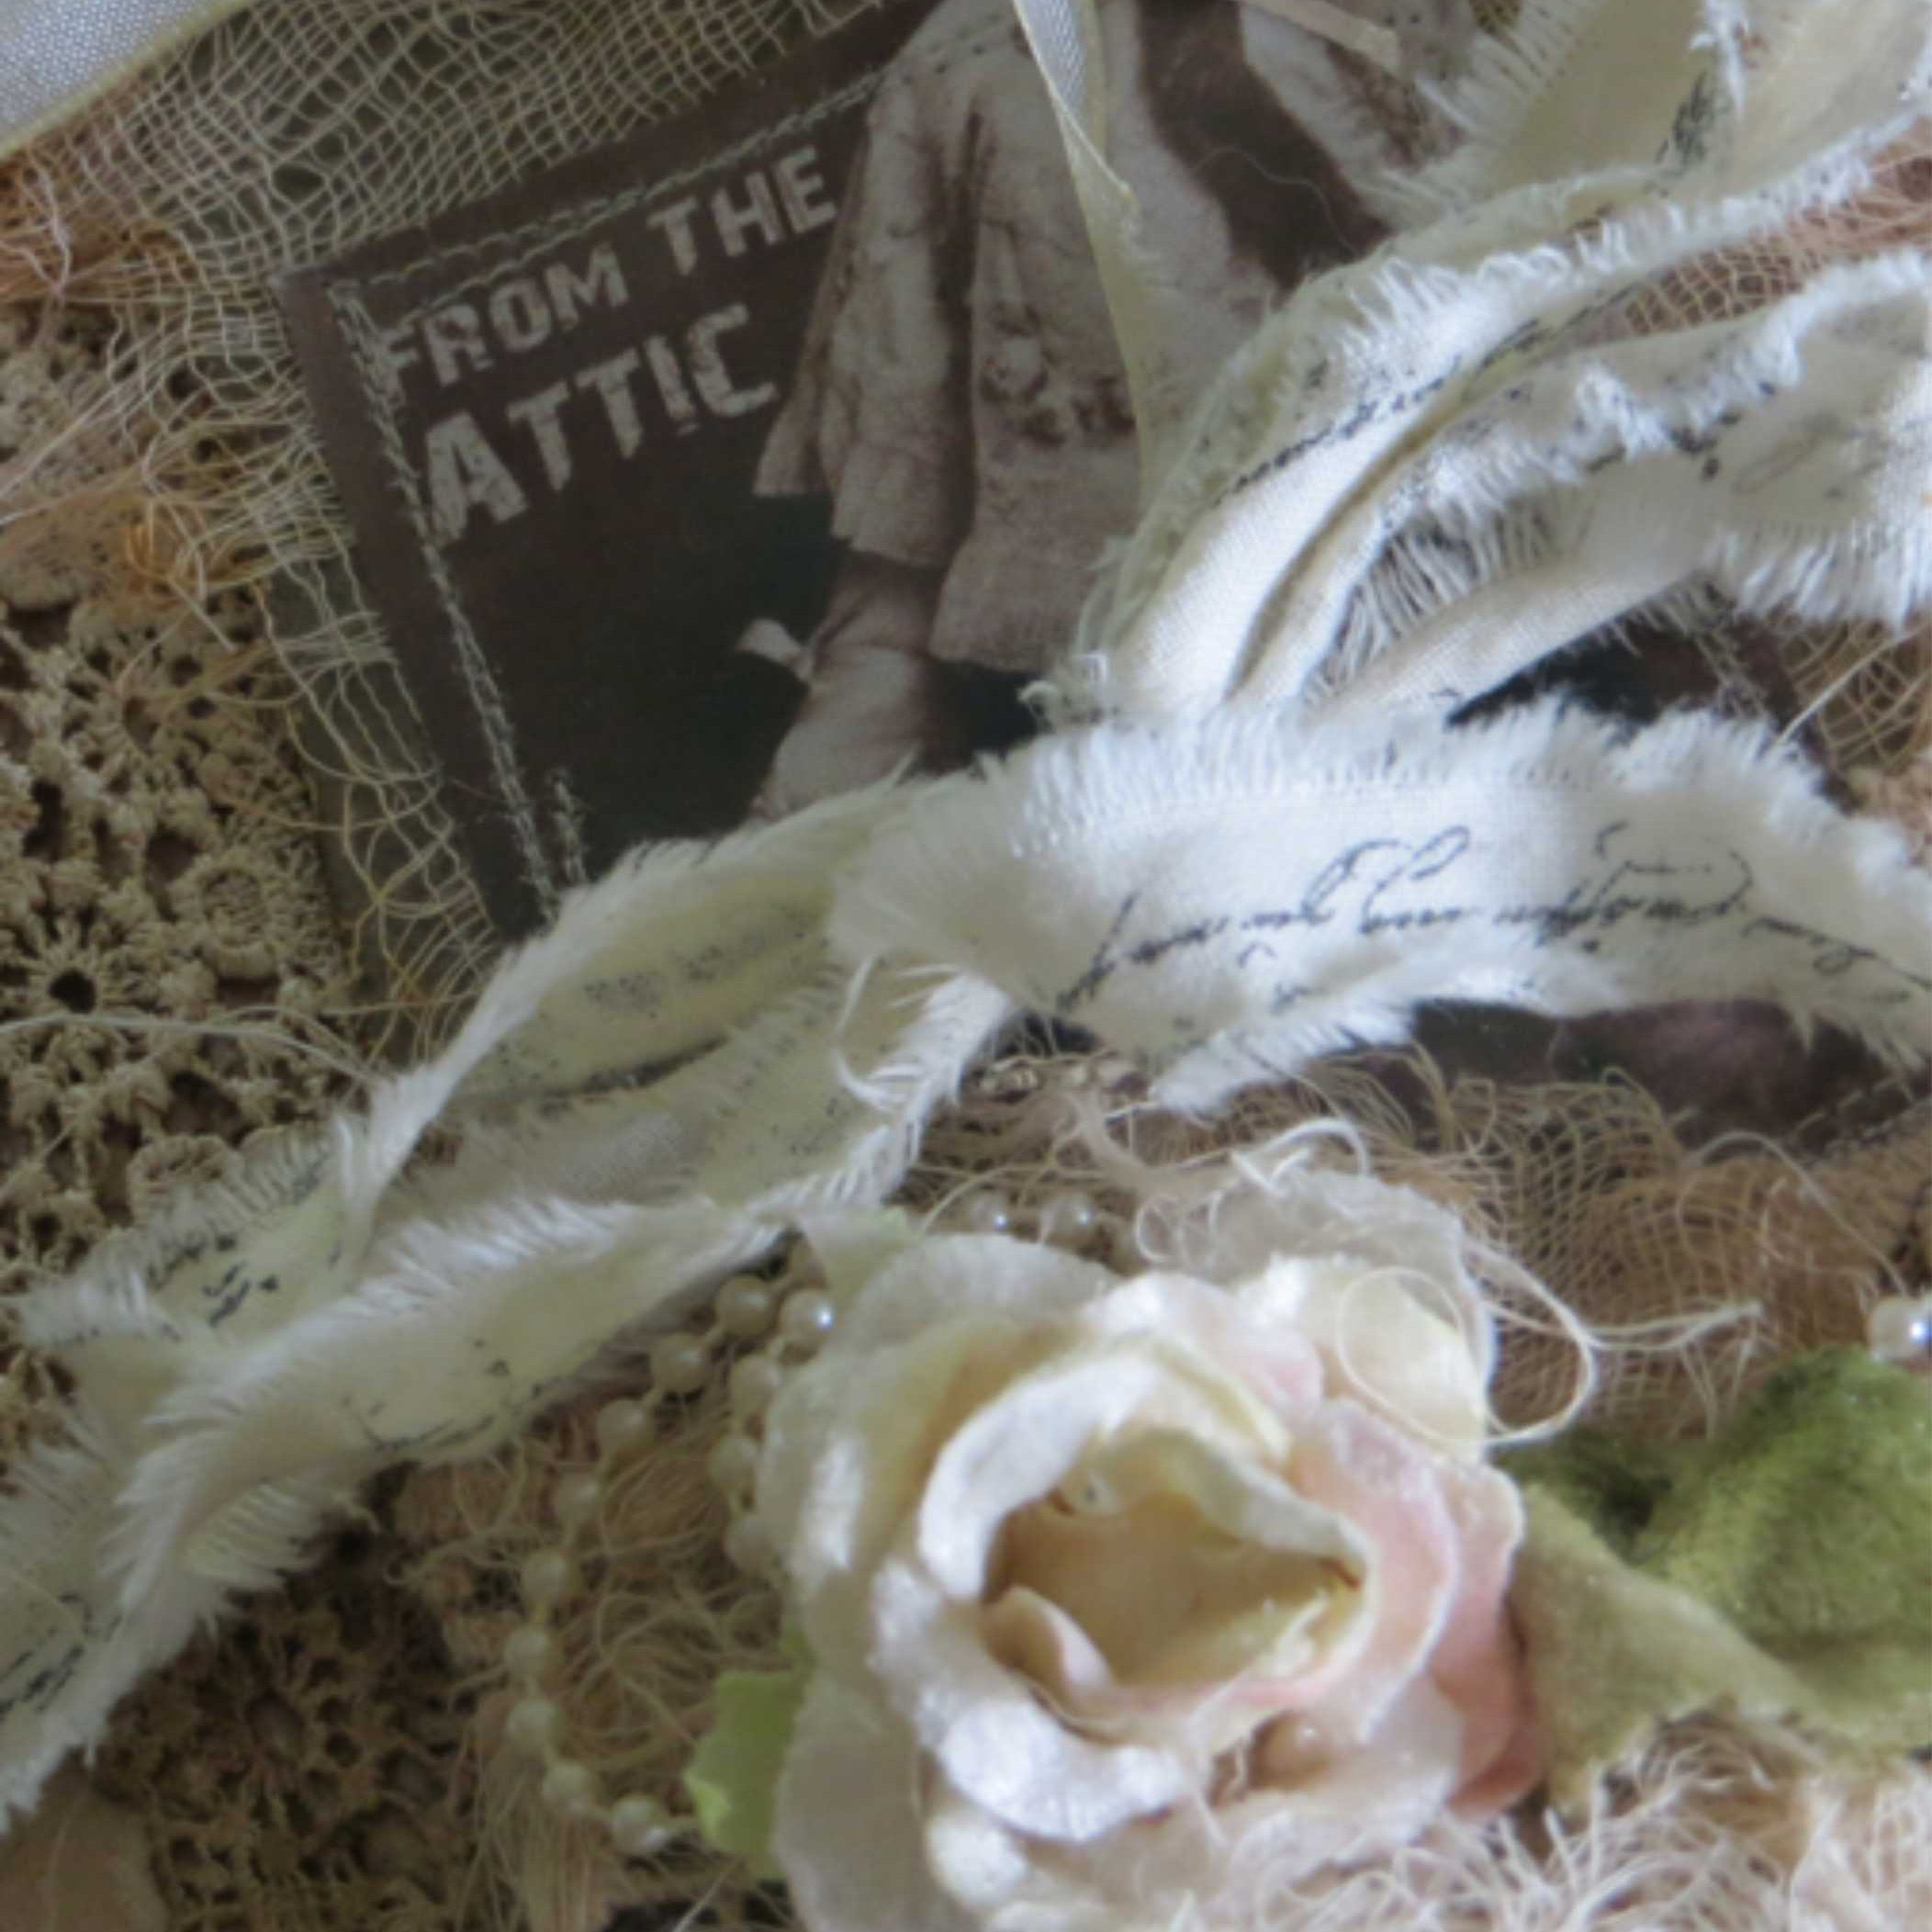 Creations From the Attic by ChrissiesAttic on Etsy